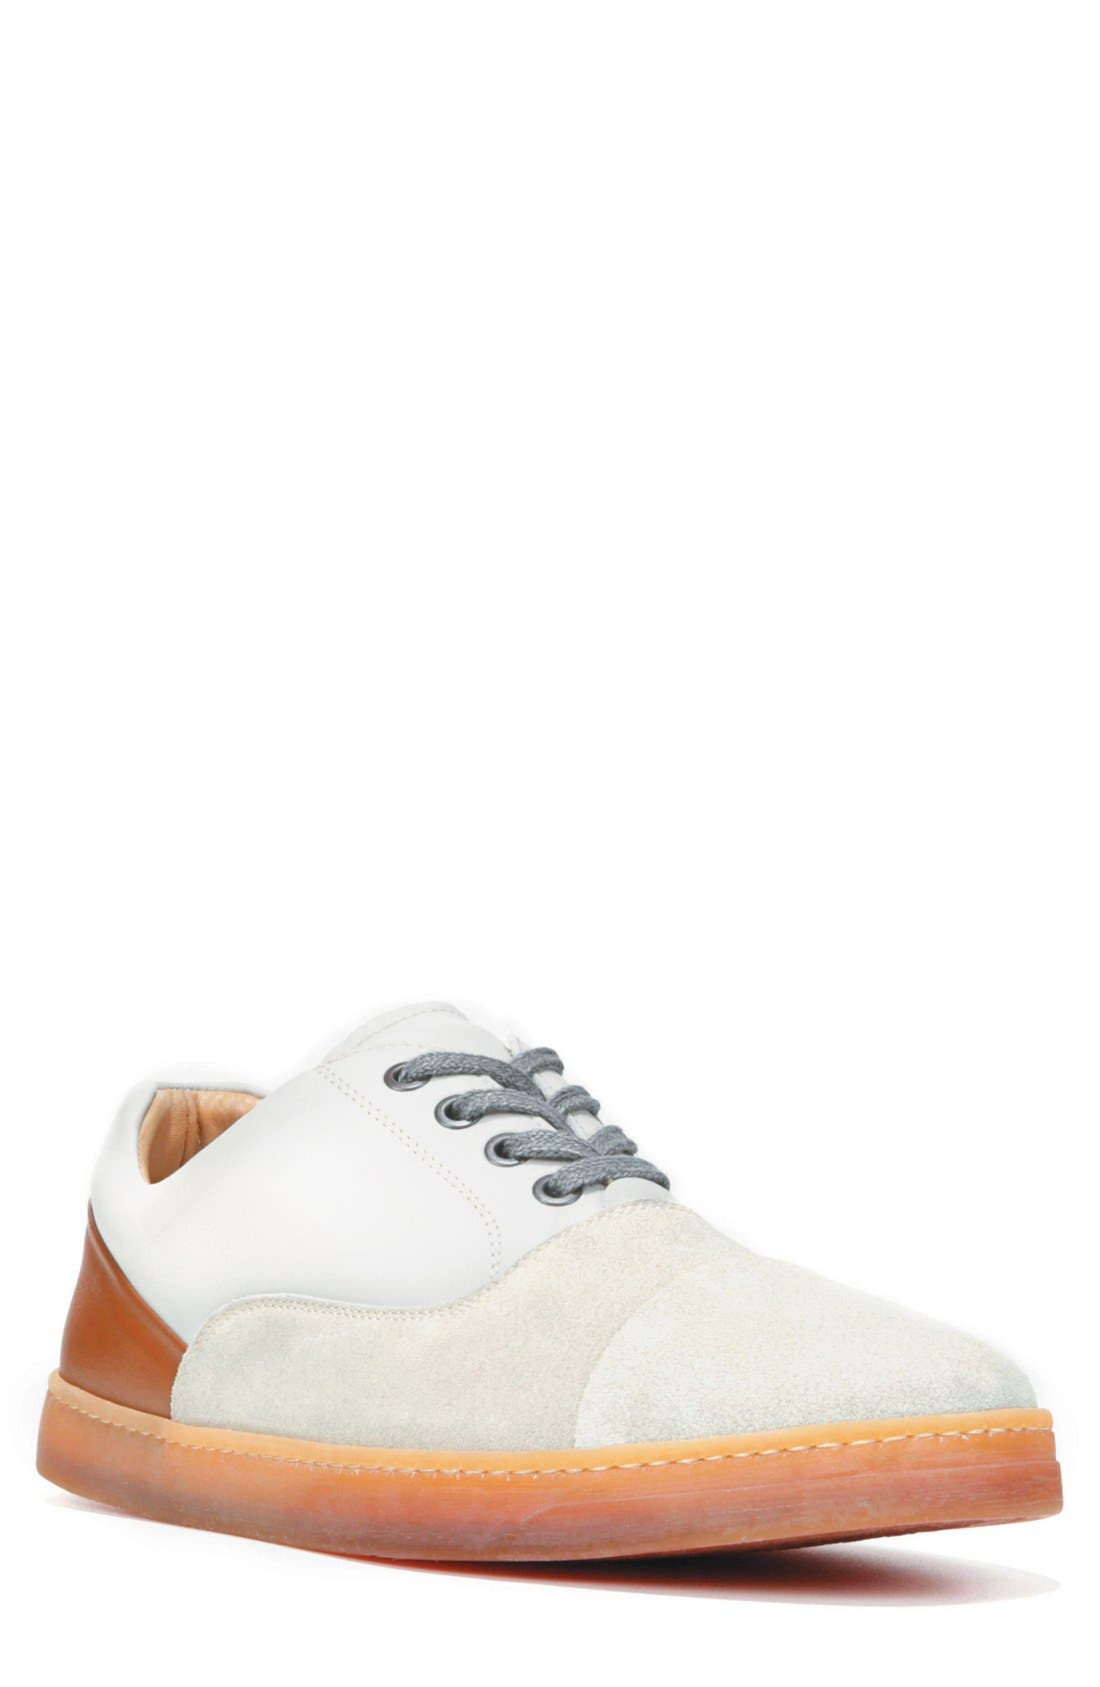 Baldwin Sneaker,                             Main thumbnail 1, color,                             Grey Suede